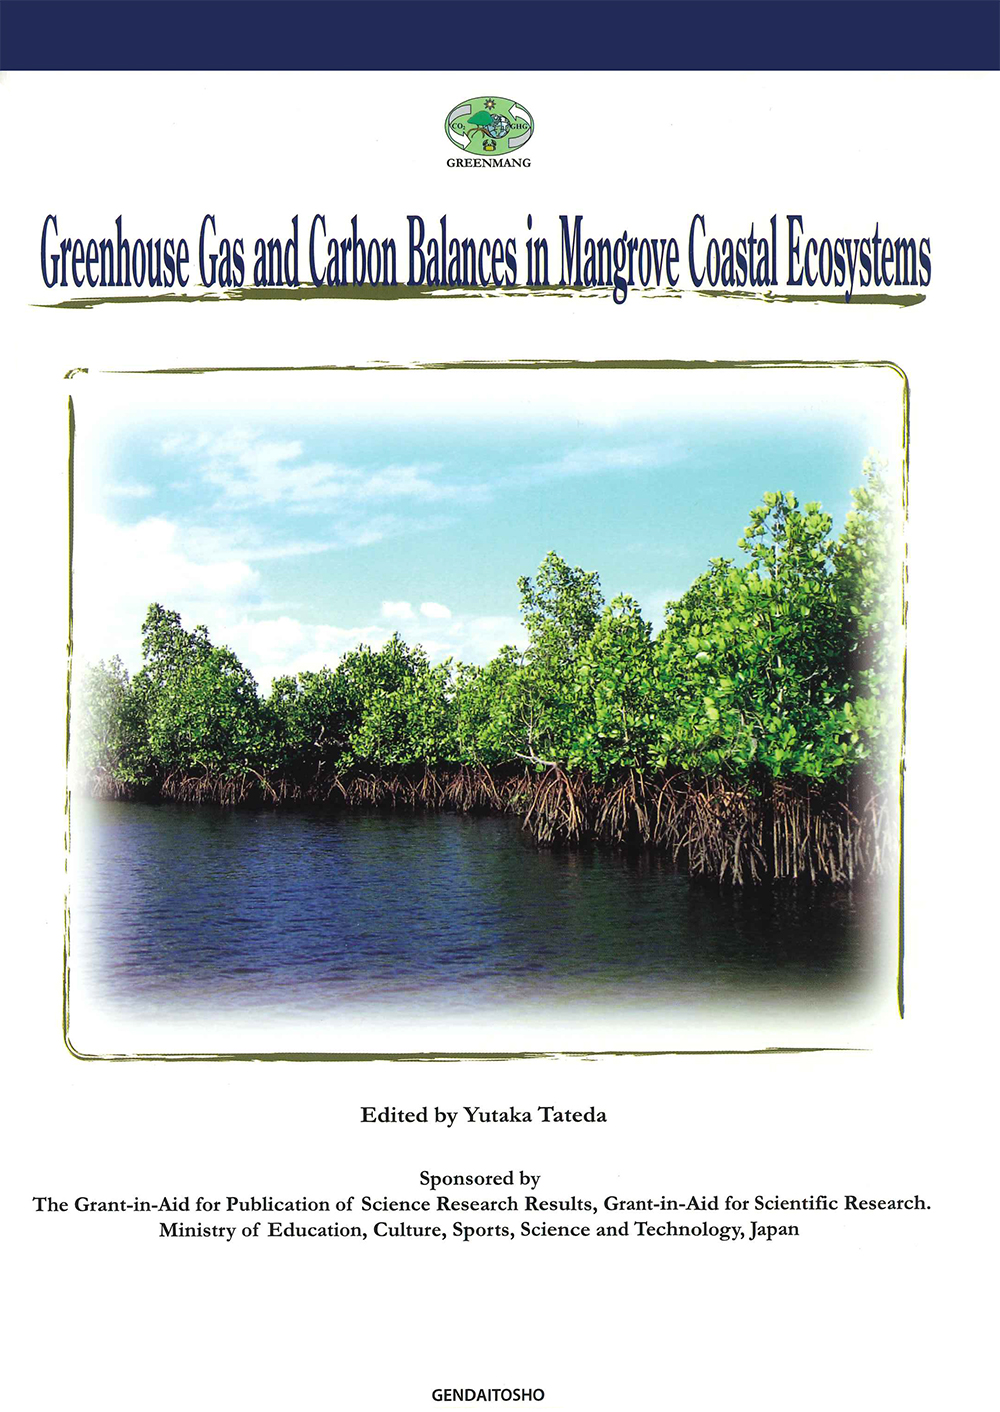 Greenhouse Gas and Carbon Balances in Mangrove Coastal Ecosystems